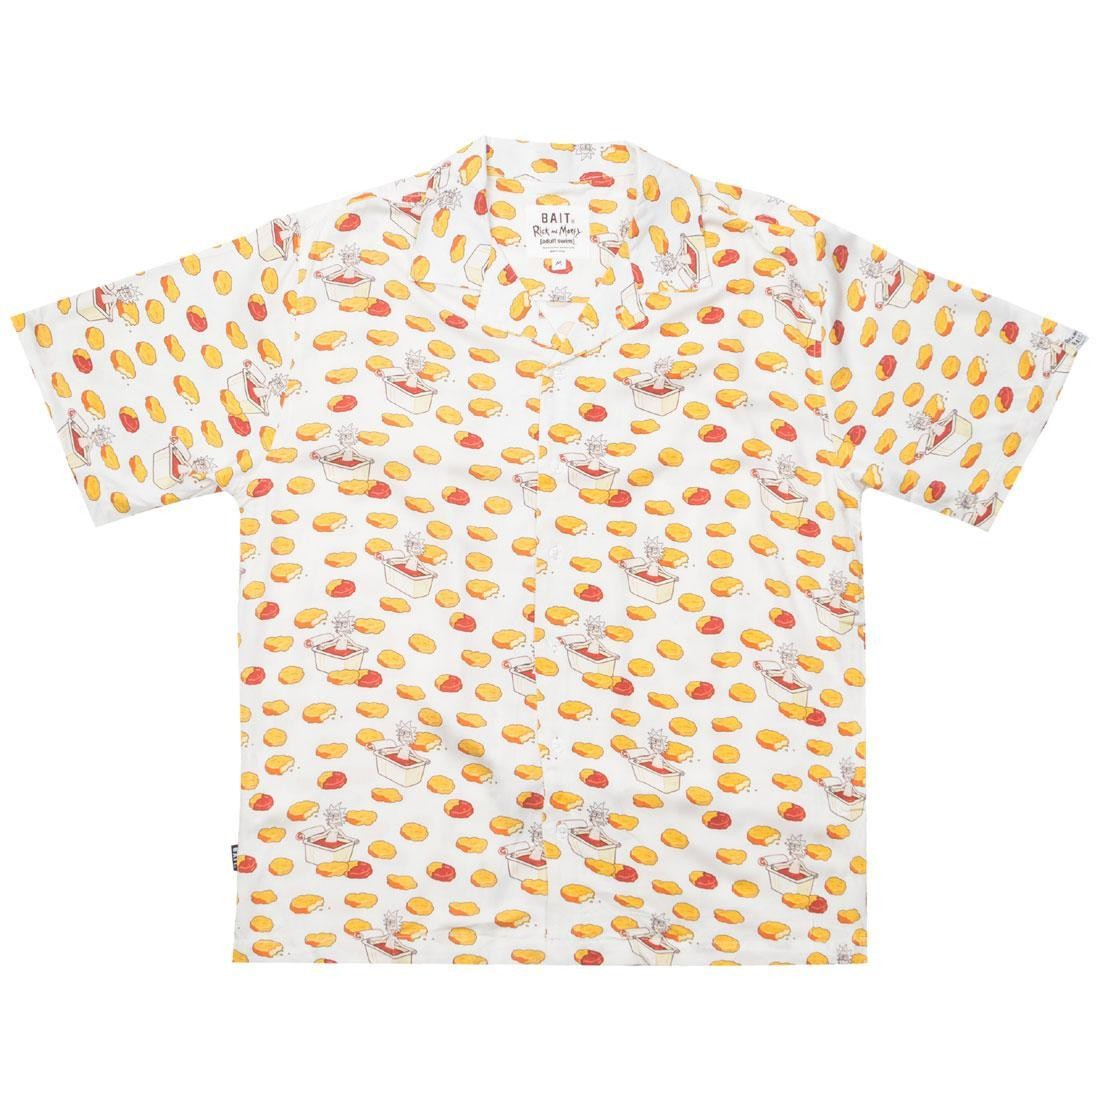 BAIT x Rick And Morty Men Chicken Nugget Hawaiian Button Up (white / nuggets)